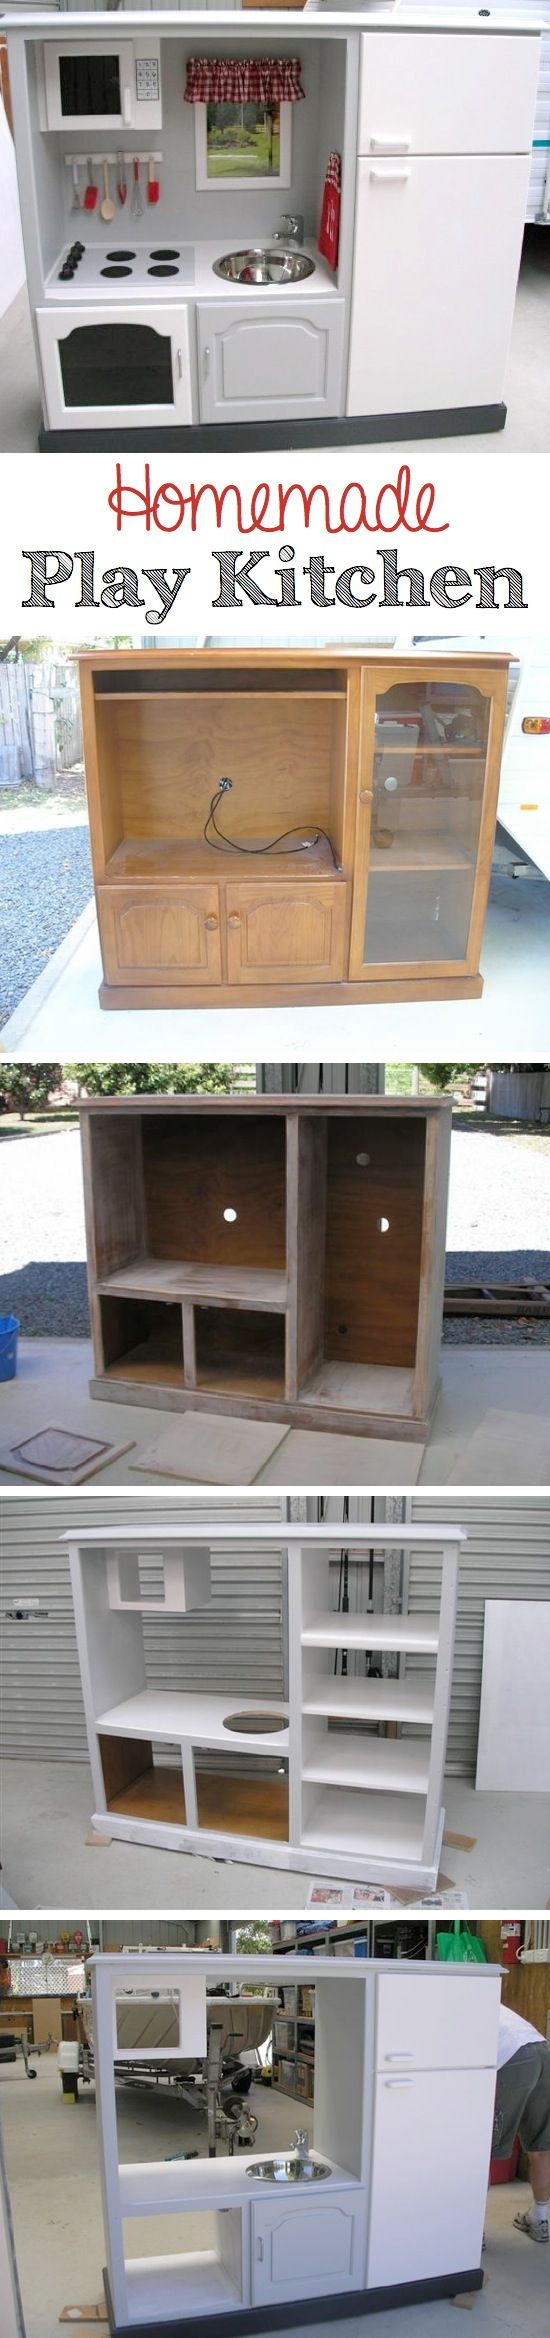 Homemade Play Kitchen | So awesome & inspiring! The inside of the refrigerator even has door shelves.